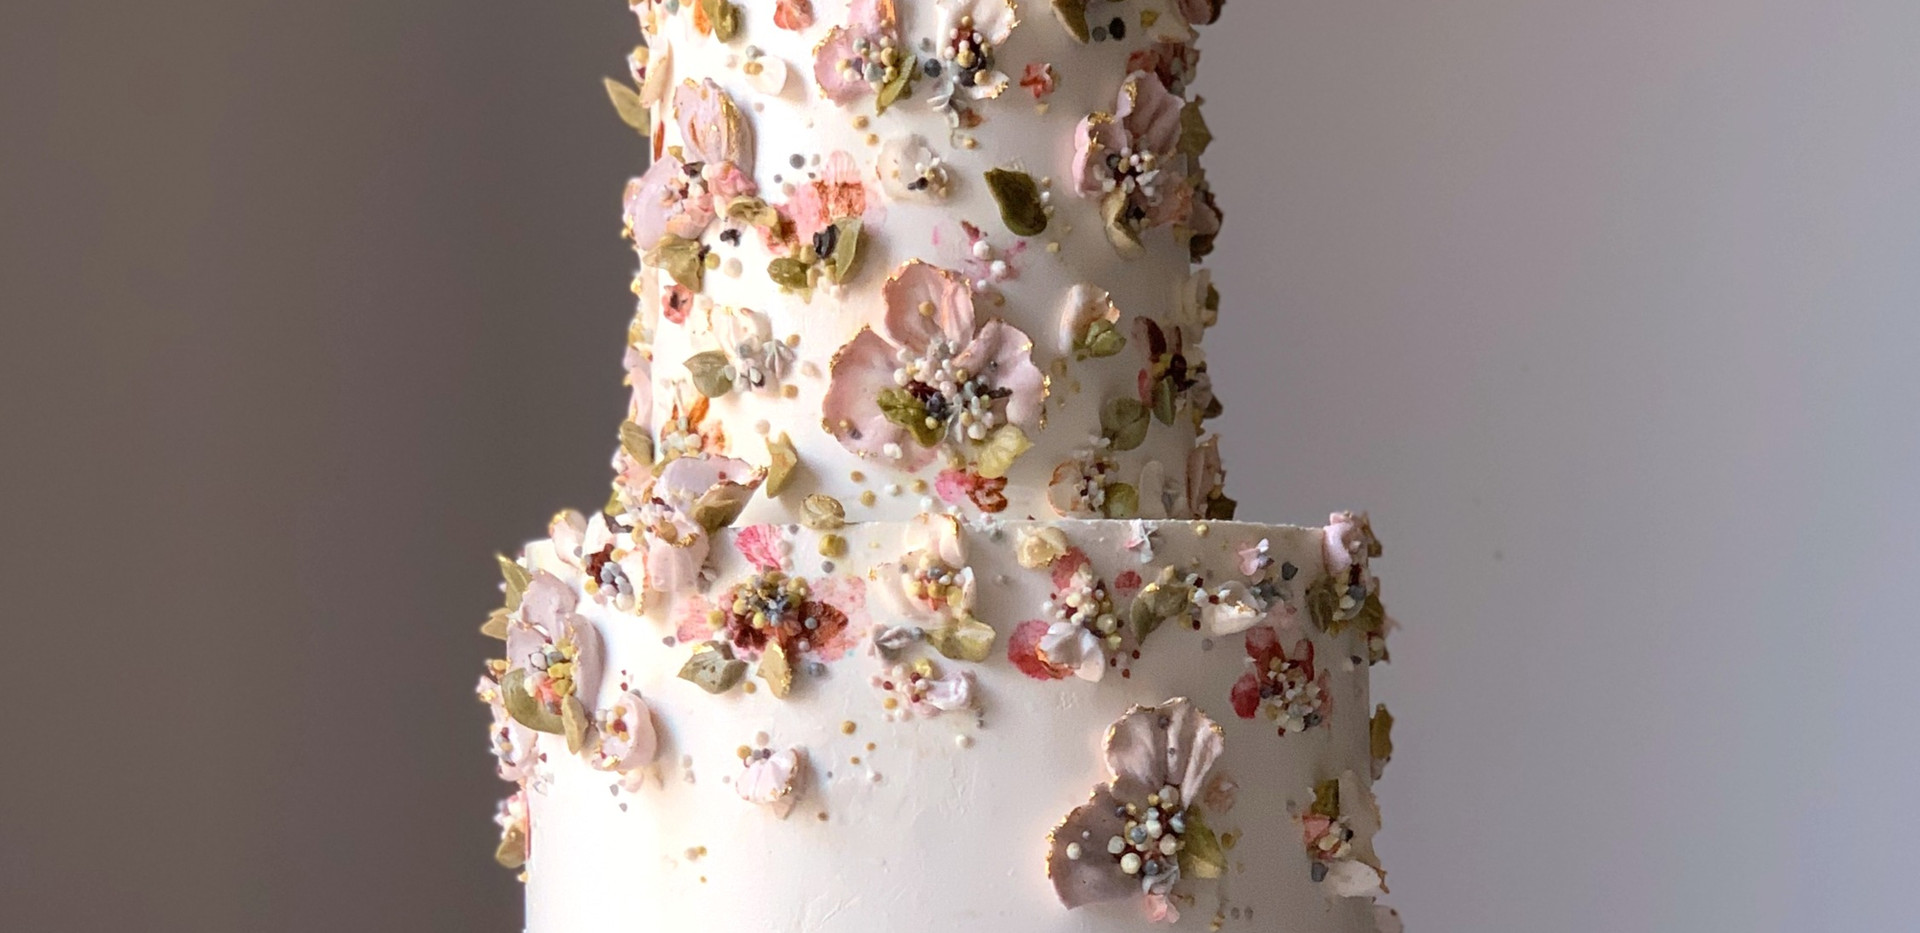 Brown Butter and Salted Caramel Wedding Cake